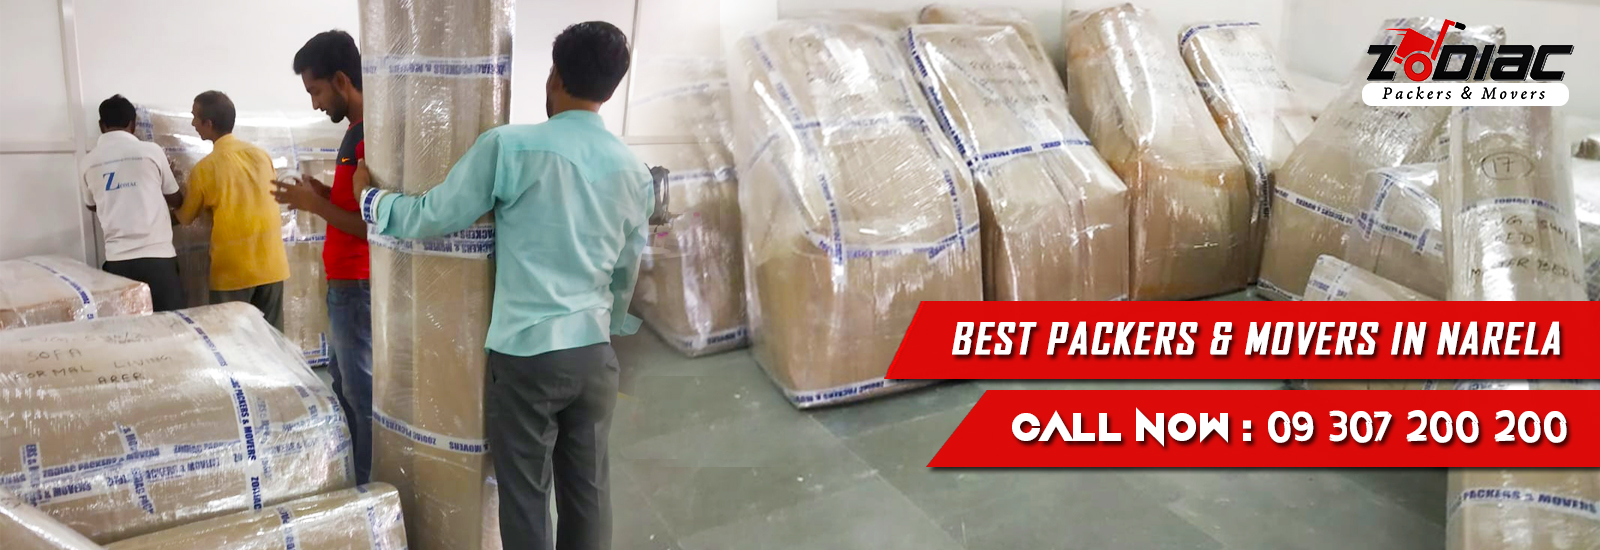 Packers and Movers in Narela